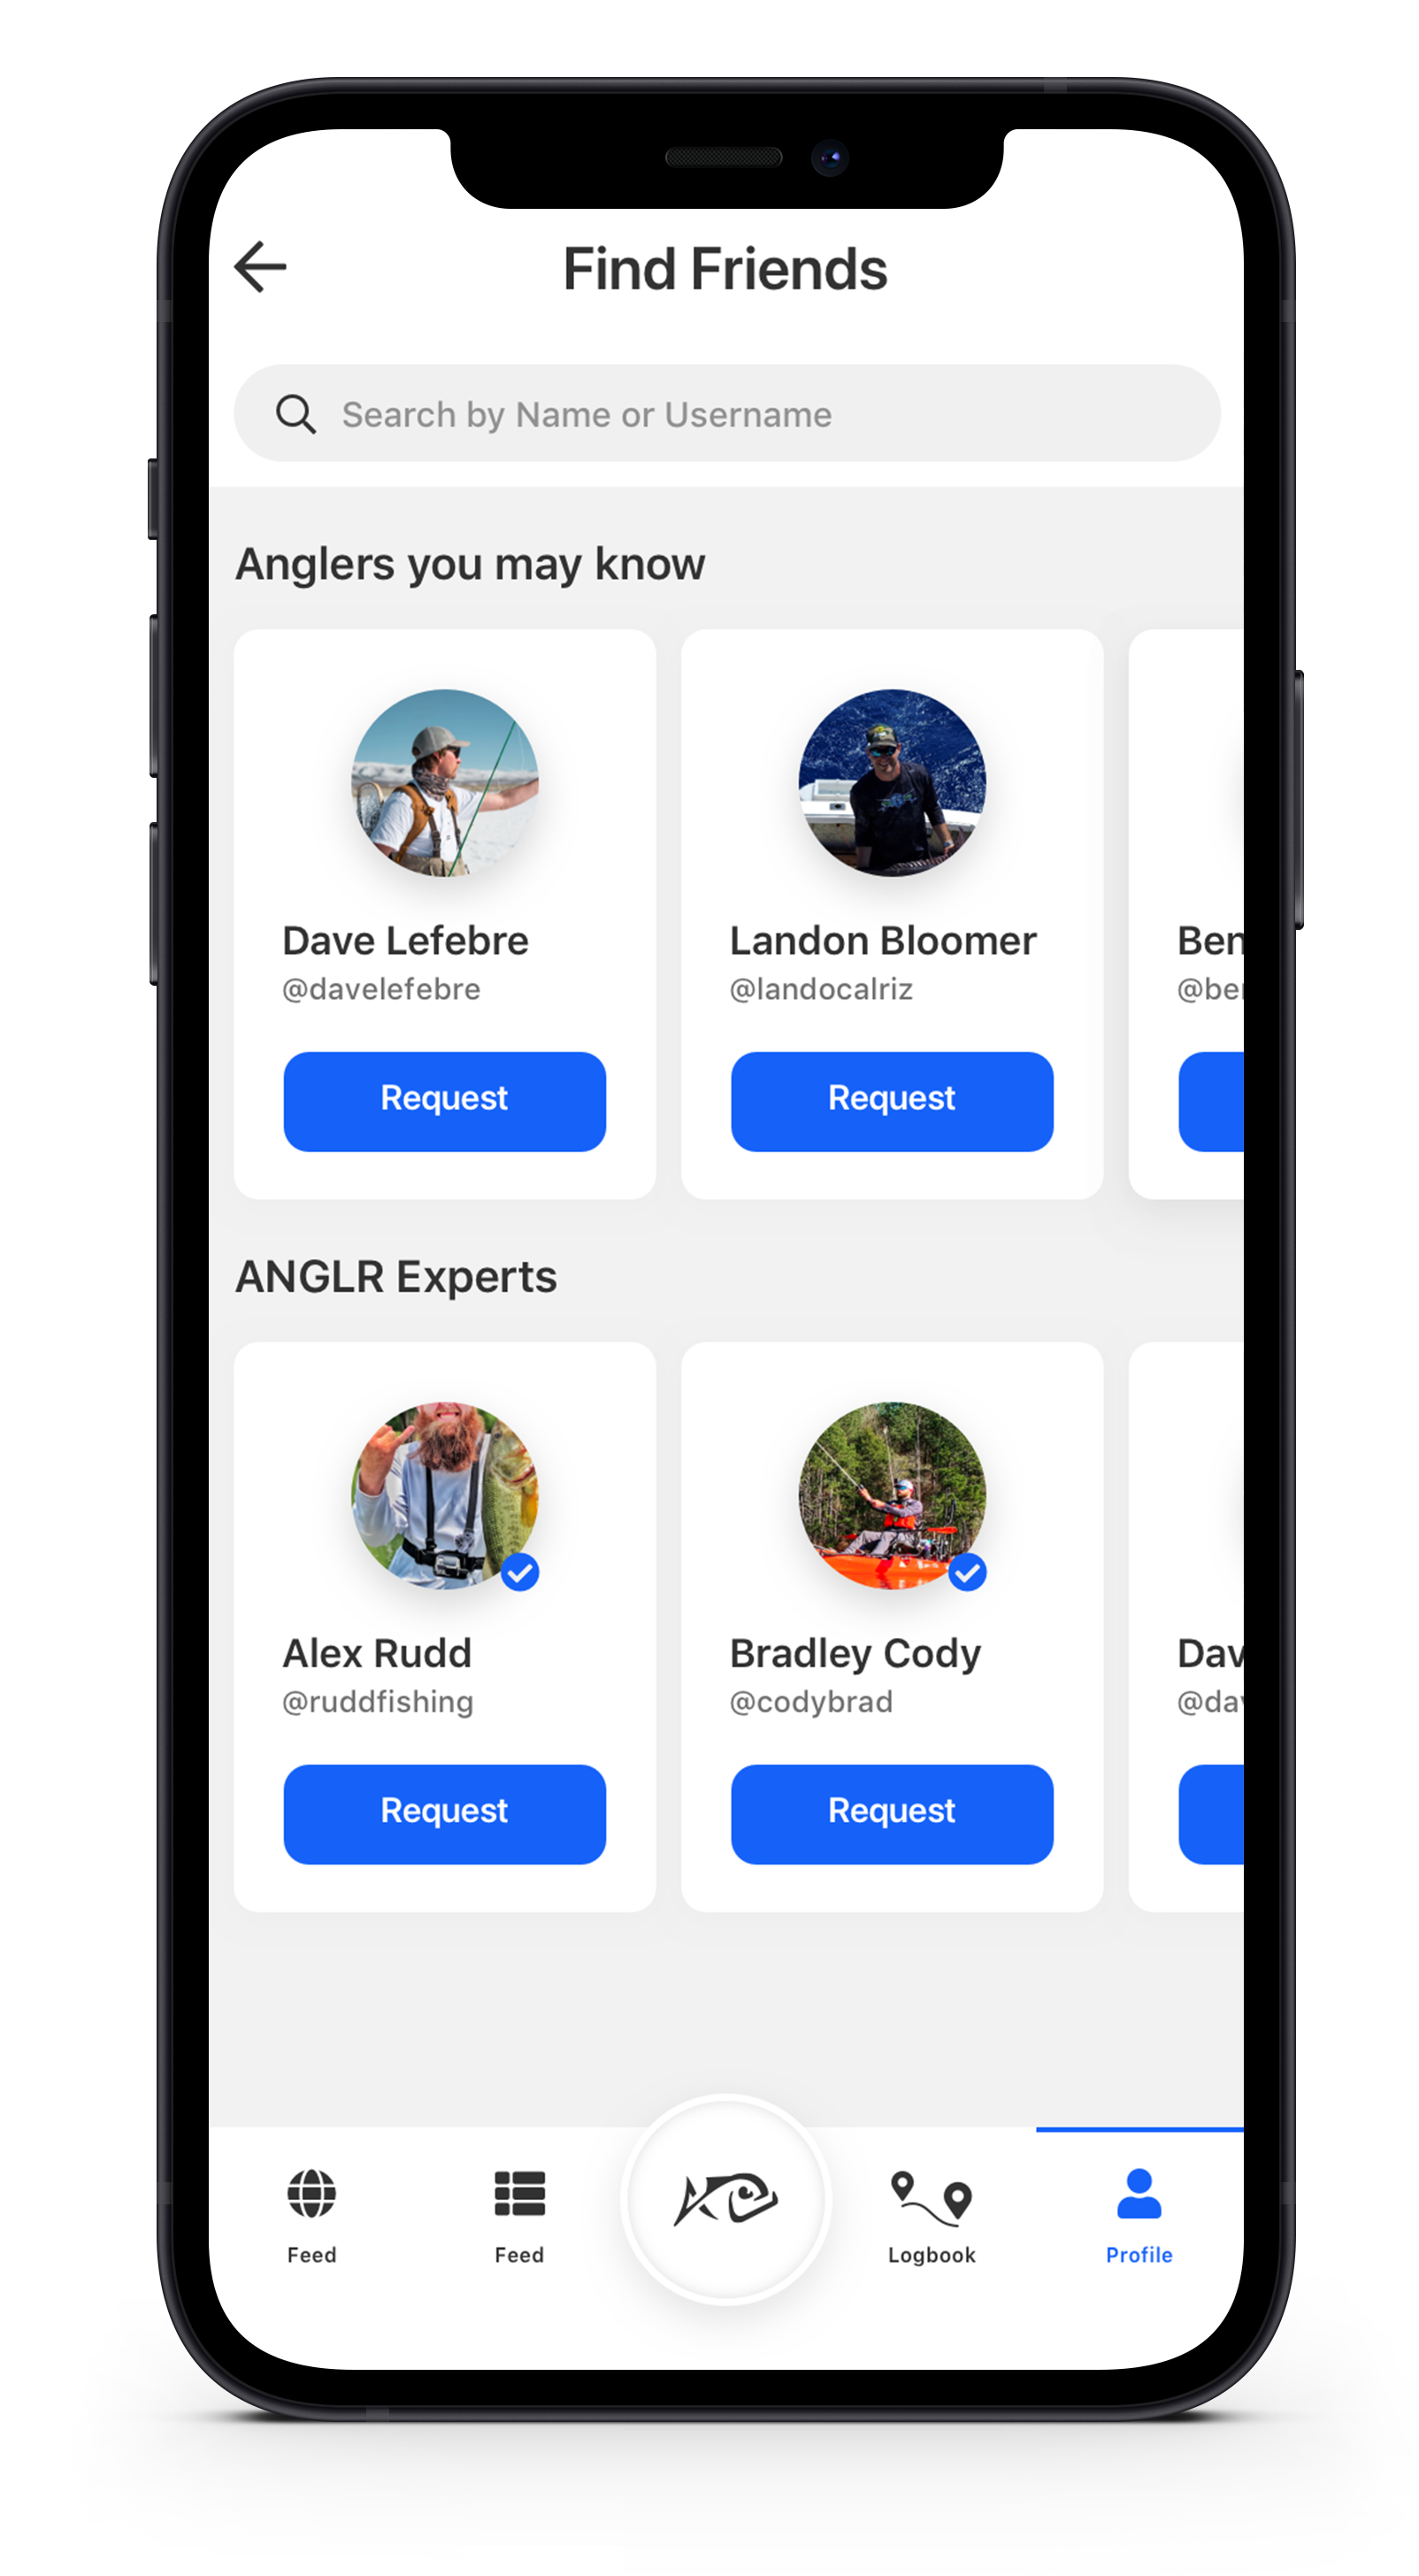 Connect with Friends on The ANGLR App